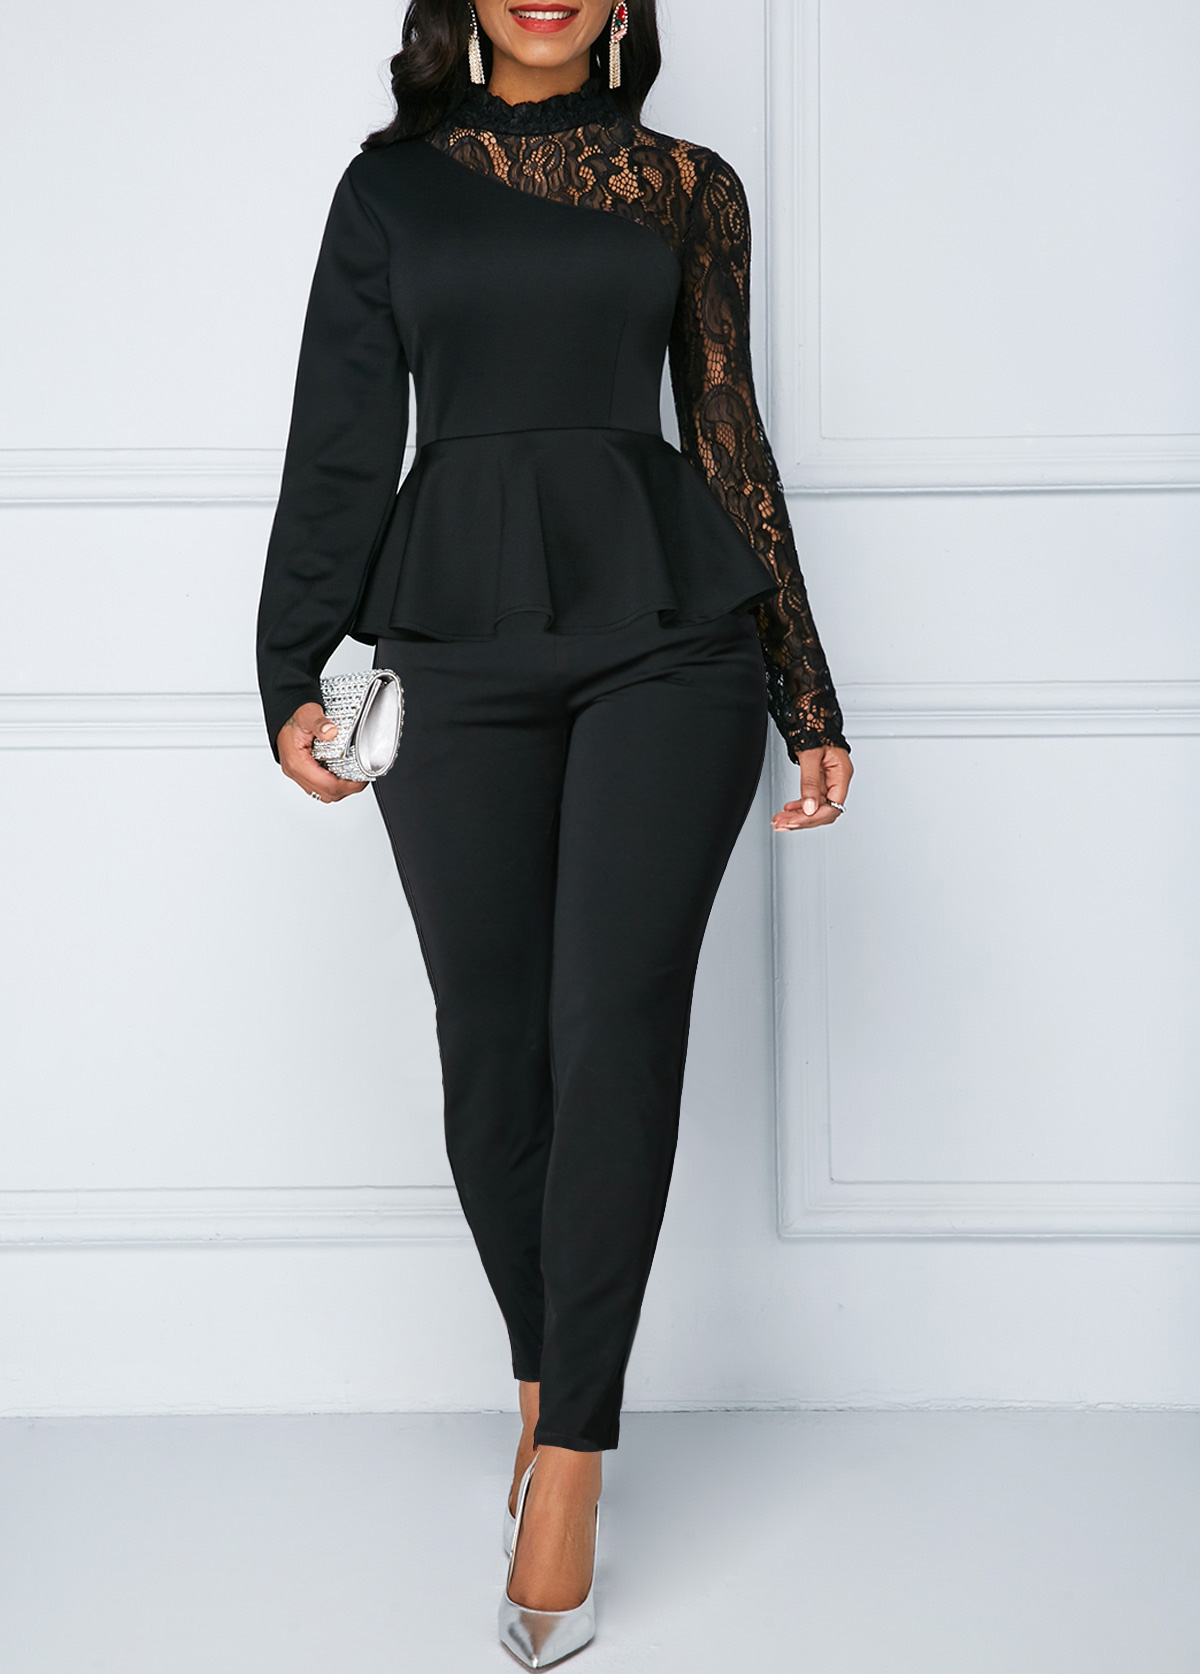 ROTITA Peplum Waist Lace Panel Long Sleeve Jumpsuit